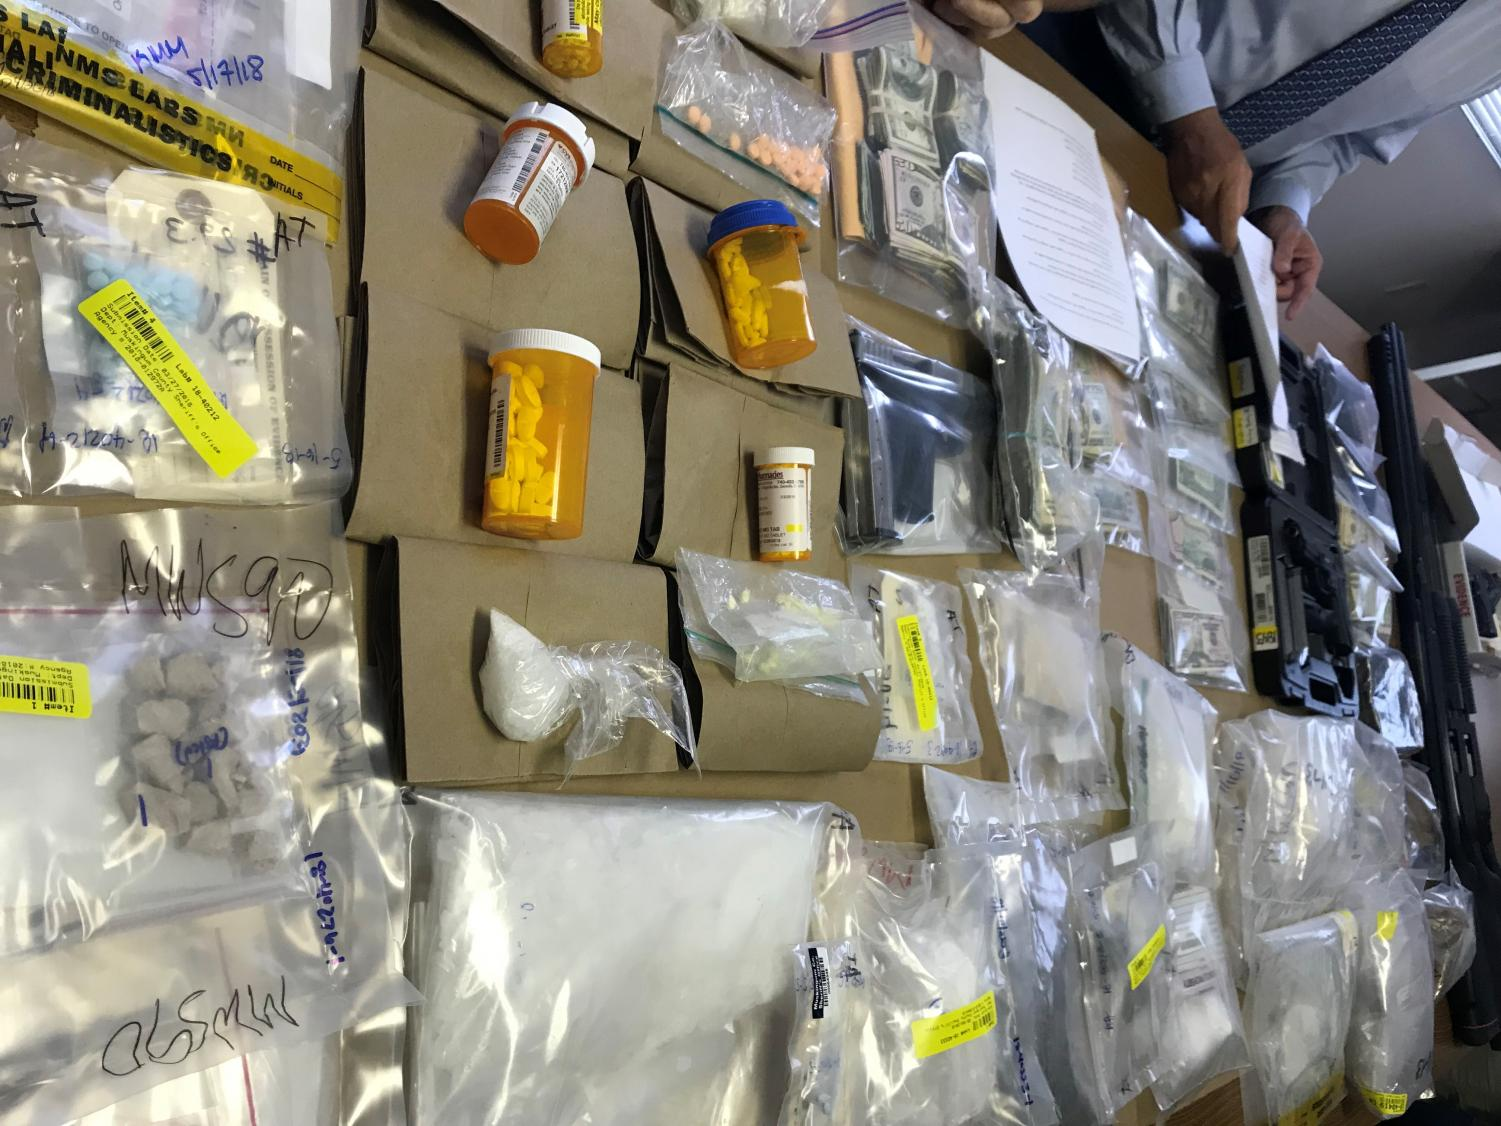 The County and City Joint Drug Unit held a press conference Wednesday morning to present the evidence seized during the raids Tuesday.